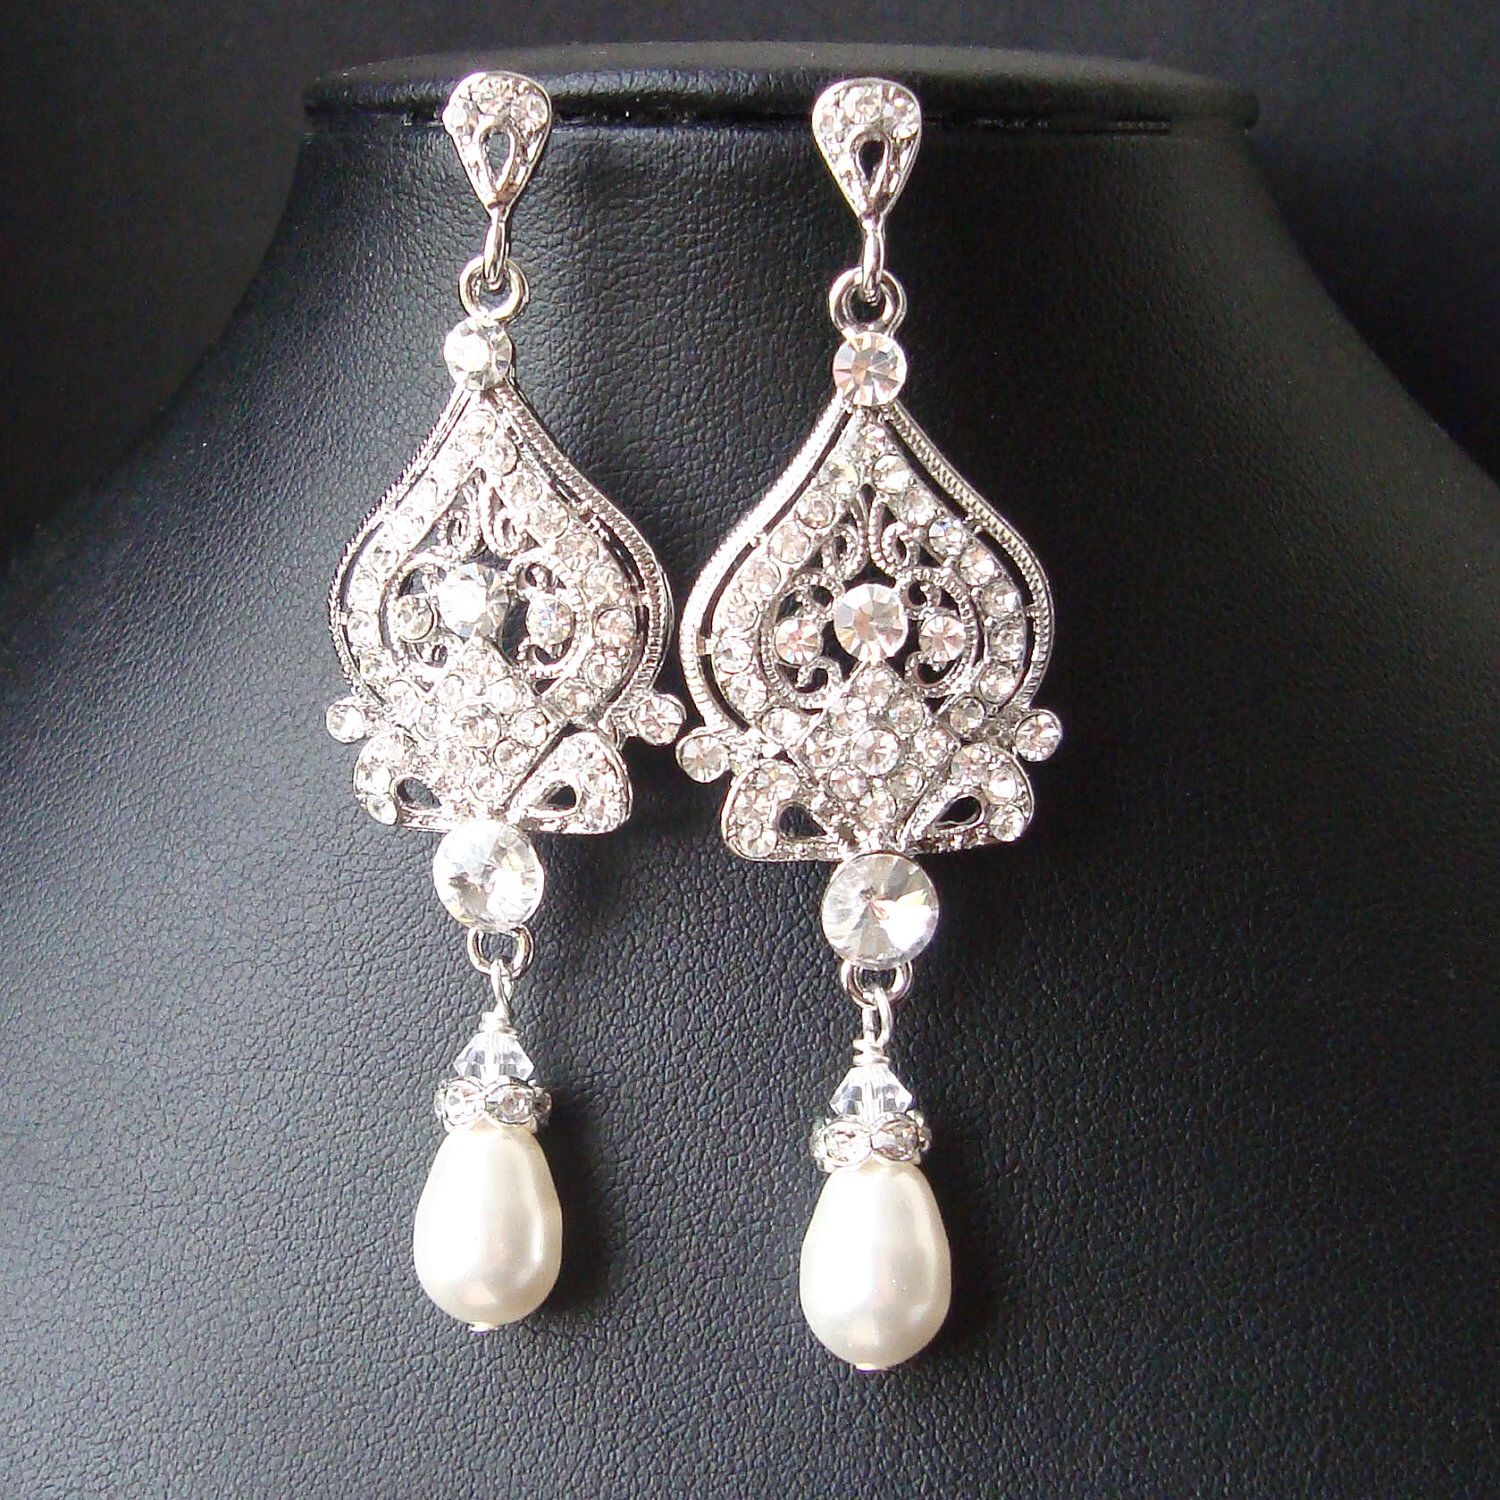 Vintage bridal earrings chandelier wedding earrings art deco vintage bridal earrings chandelier wedding earrings art deco bridal jewelry pearl wedding jewelry mozeypictures Image collections